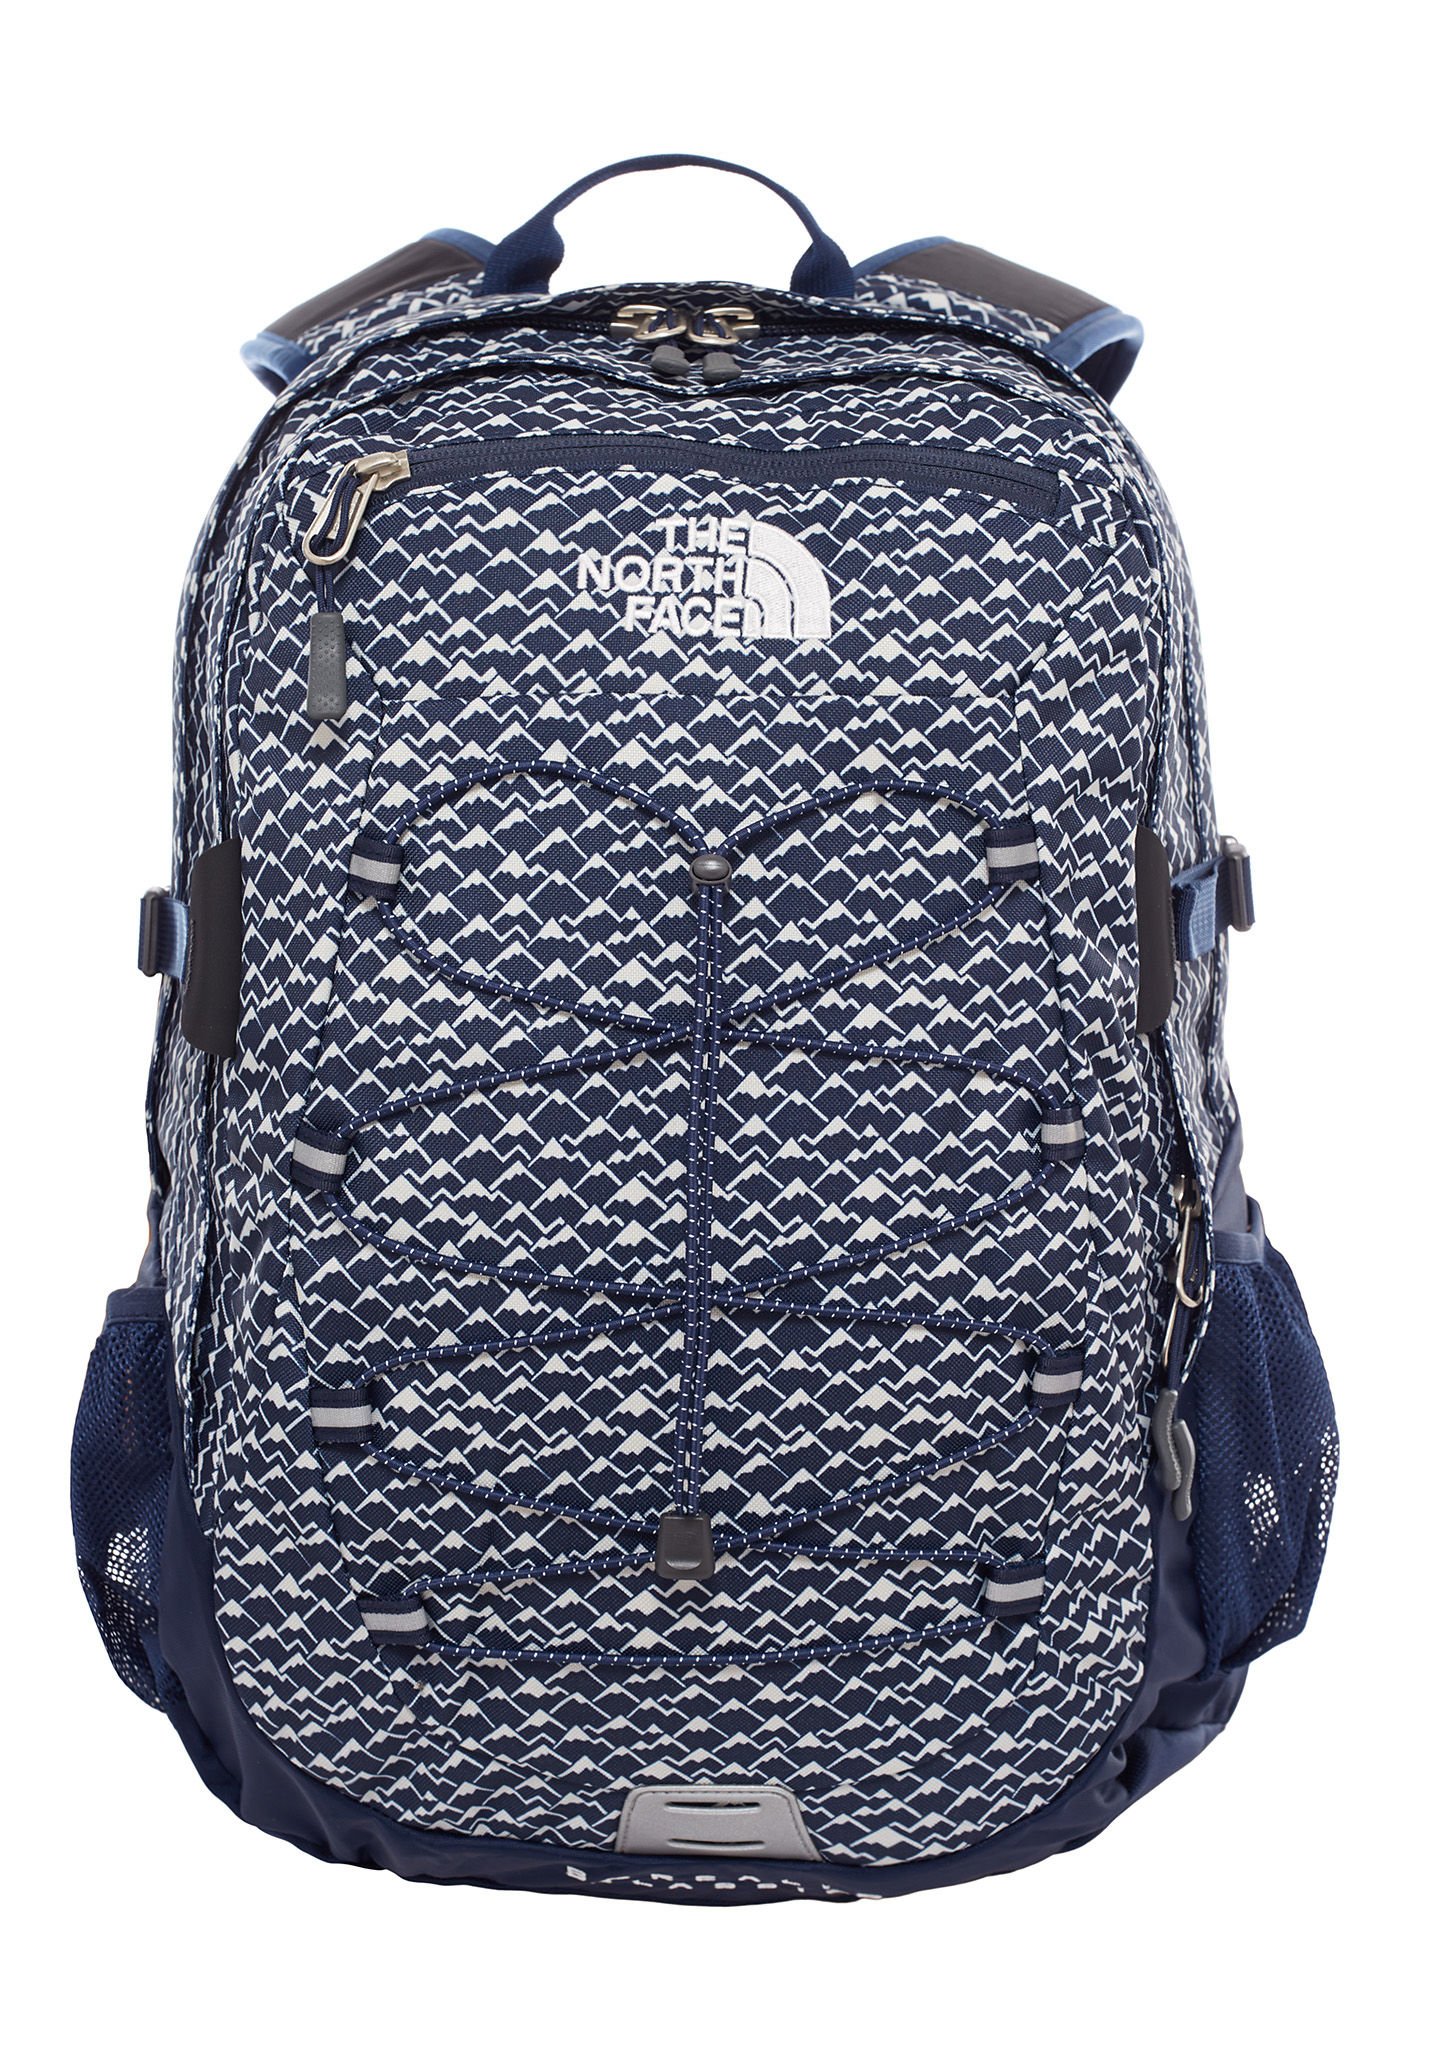 THE NORTH FACE Borealis 28L - Zaino - Blu - Planet Sports 26b55f95044a